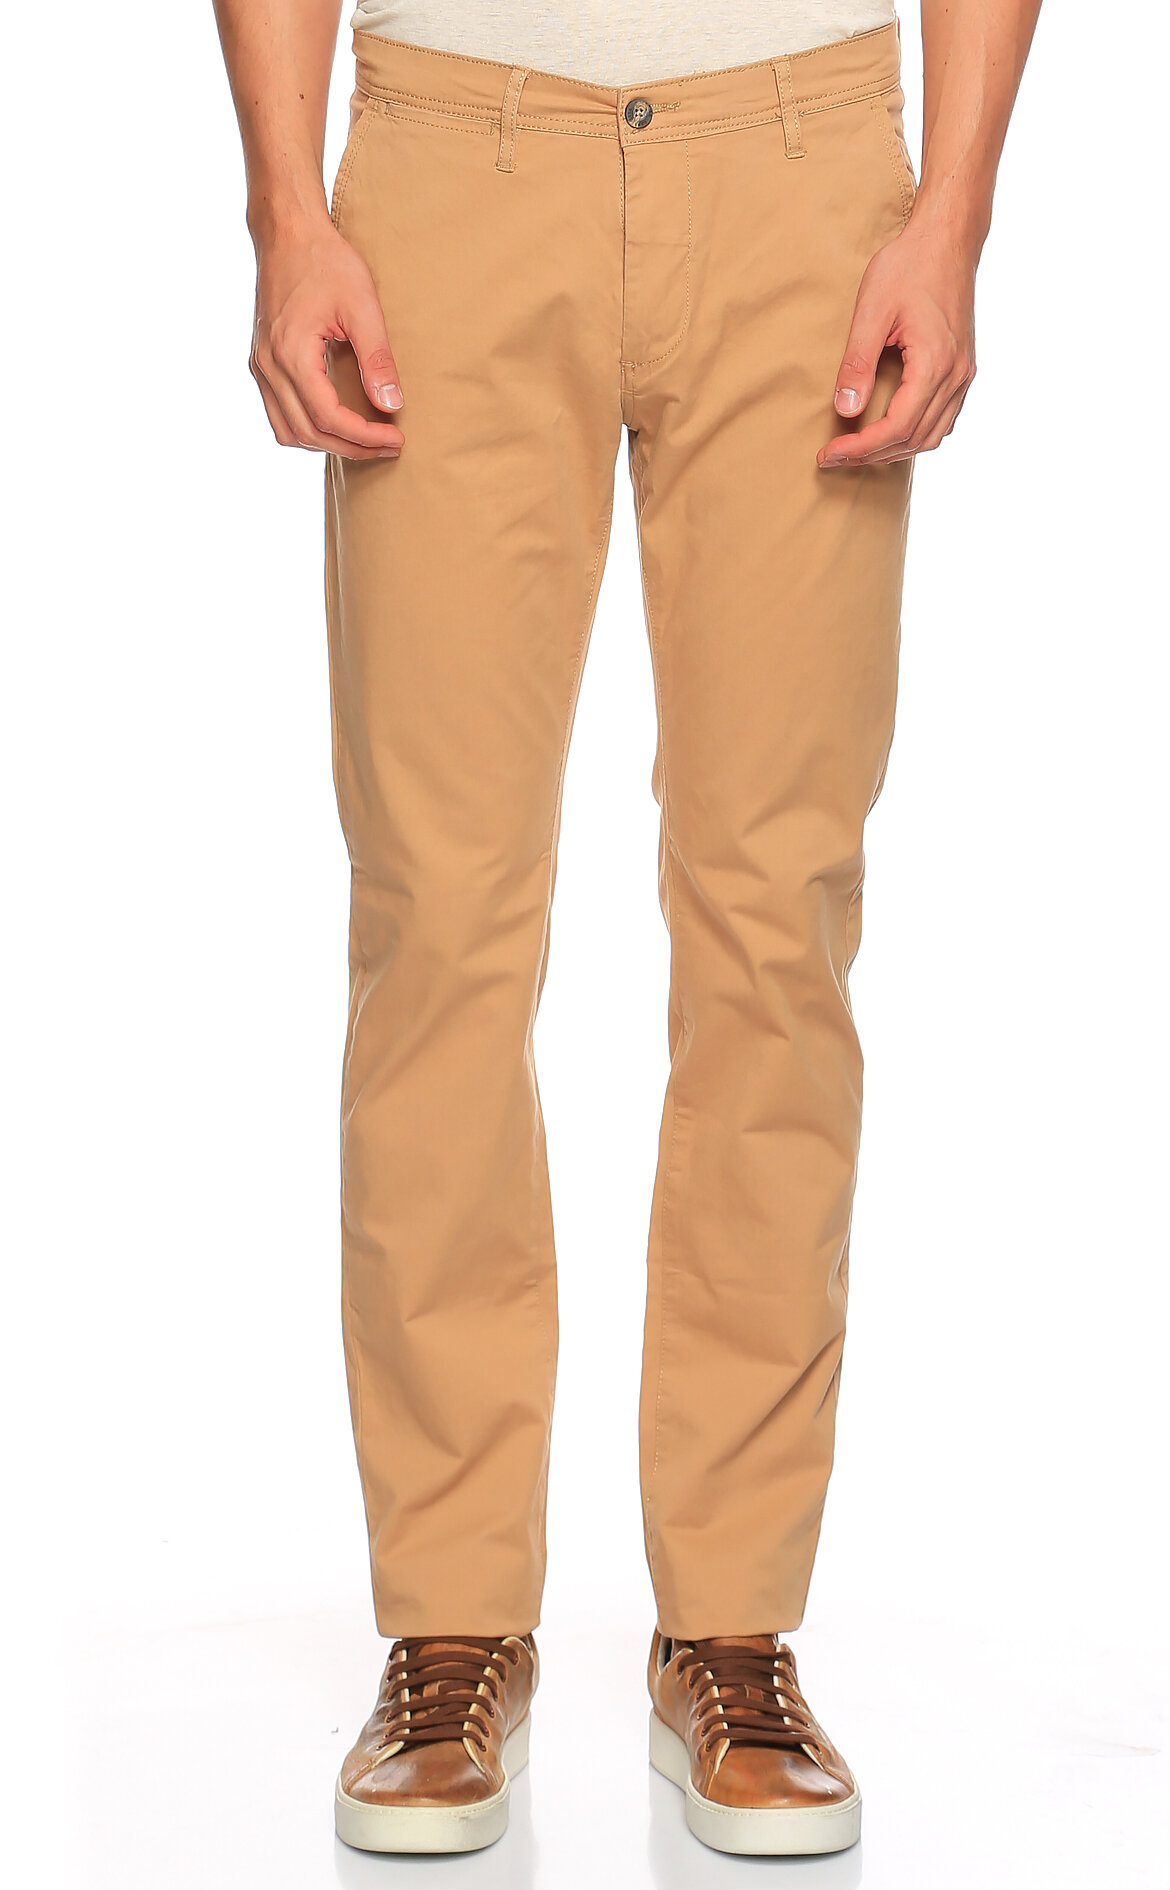 Casual Men-Casual Men Camel Pantolon